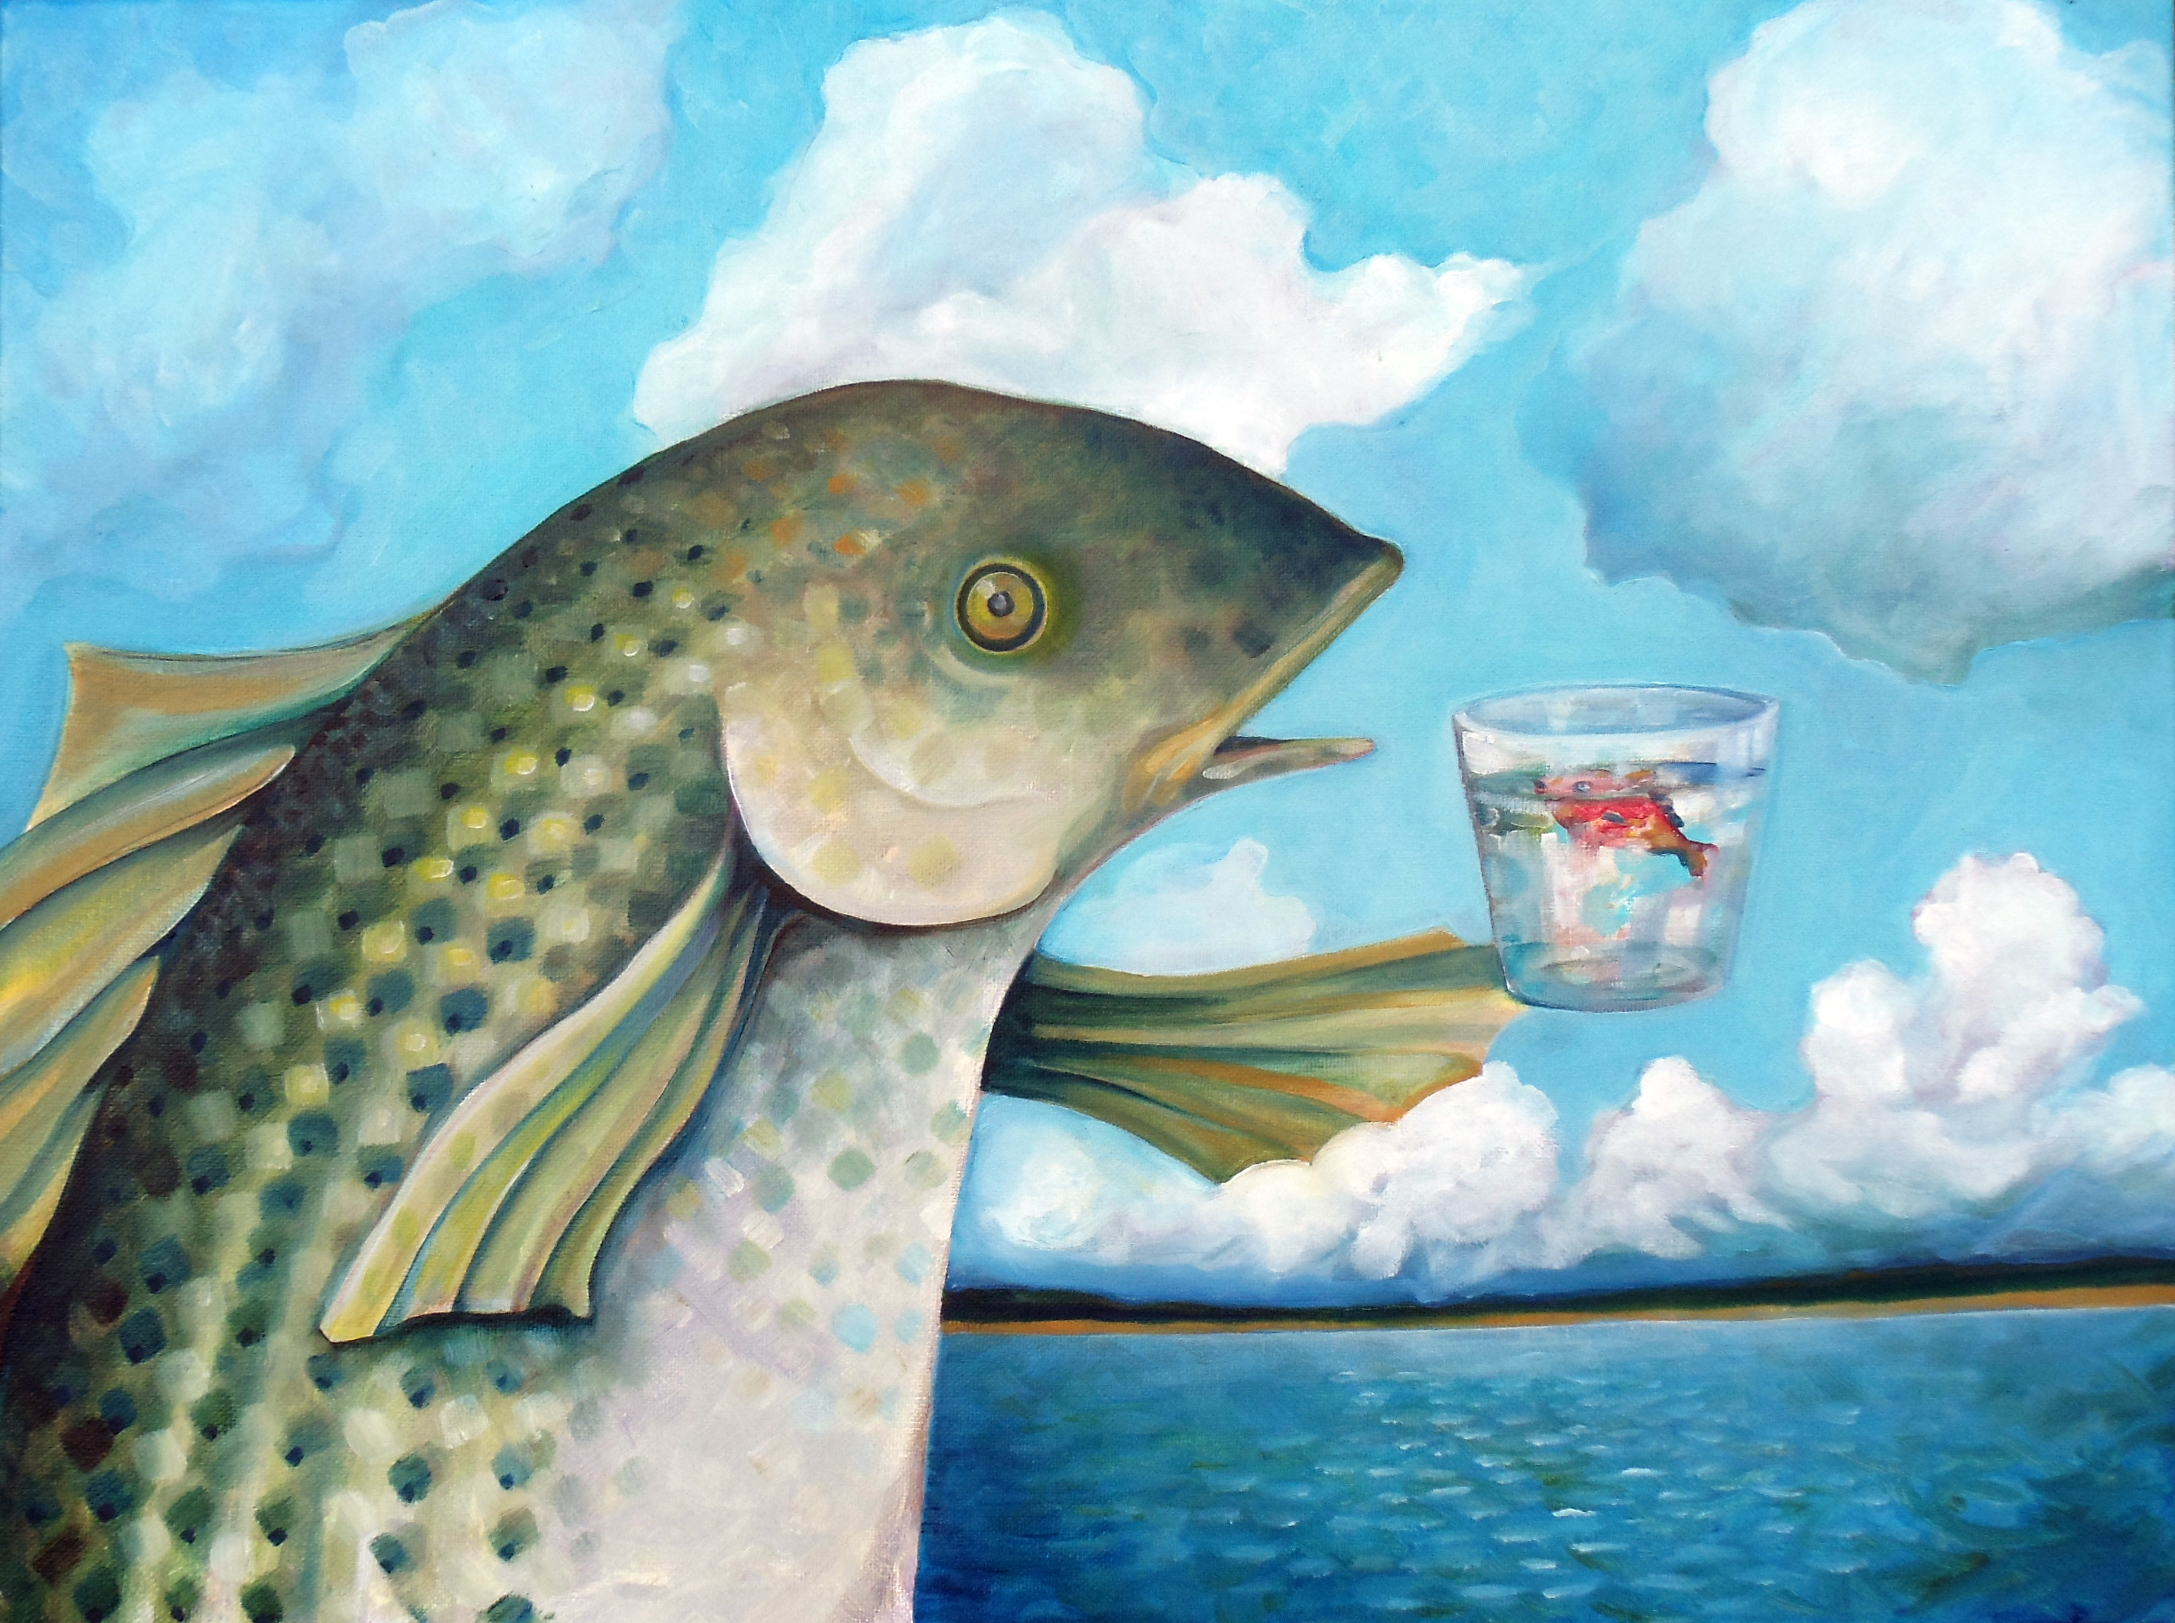 A large Rock Fish raises a glass with a small orange fish in it